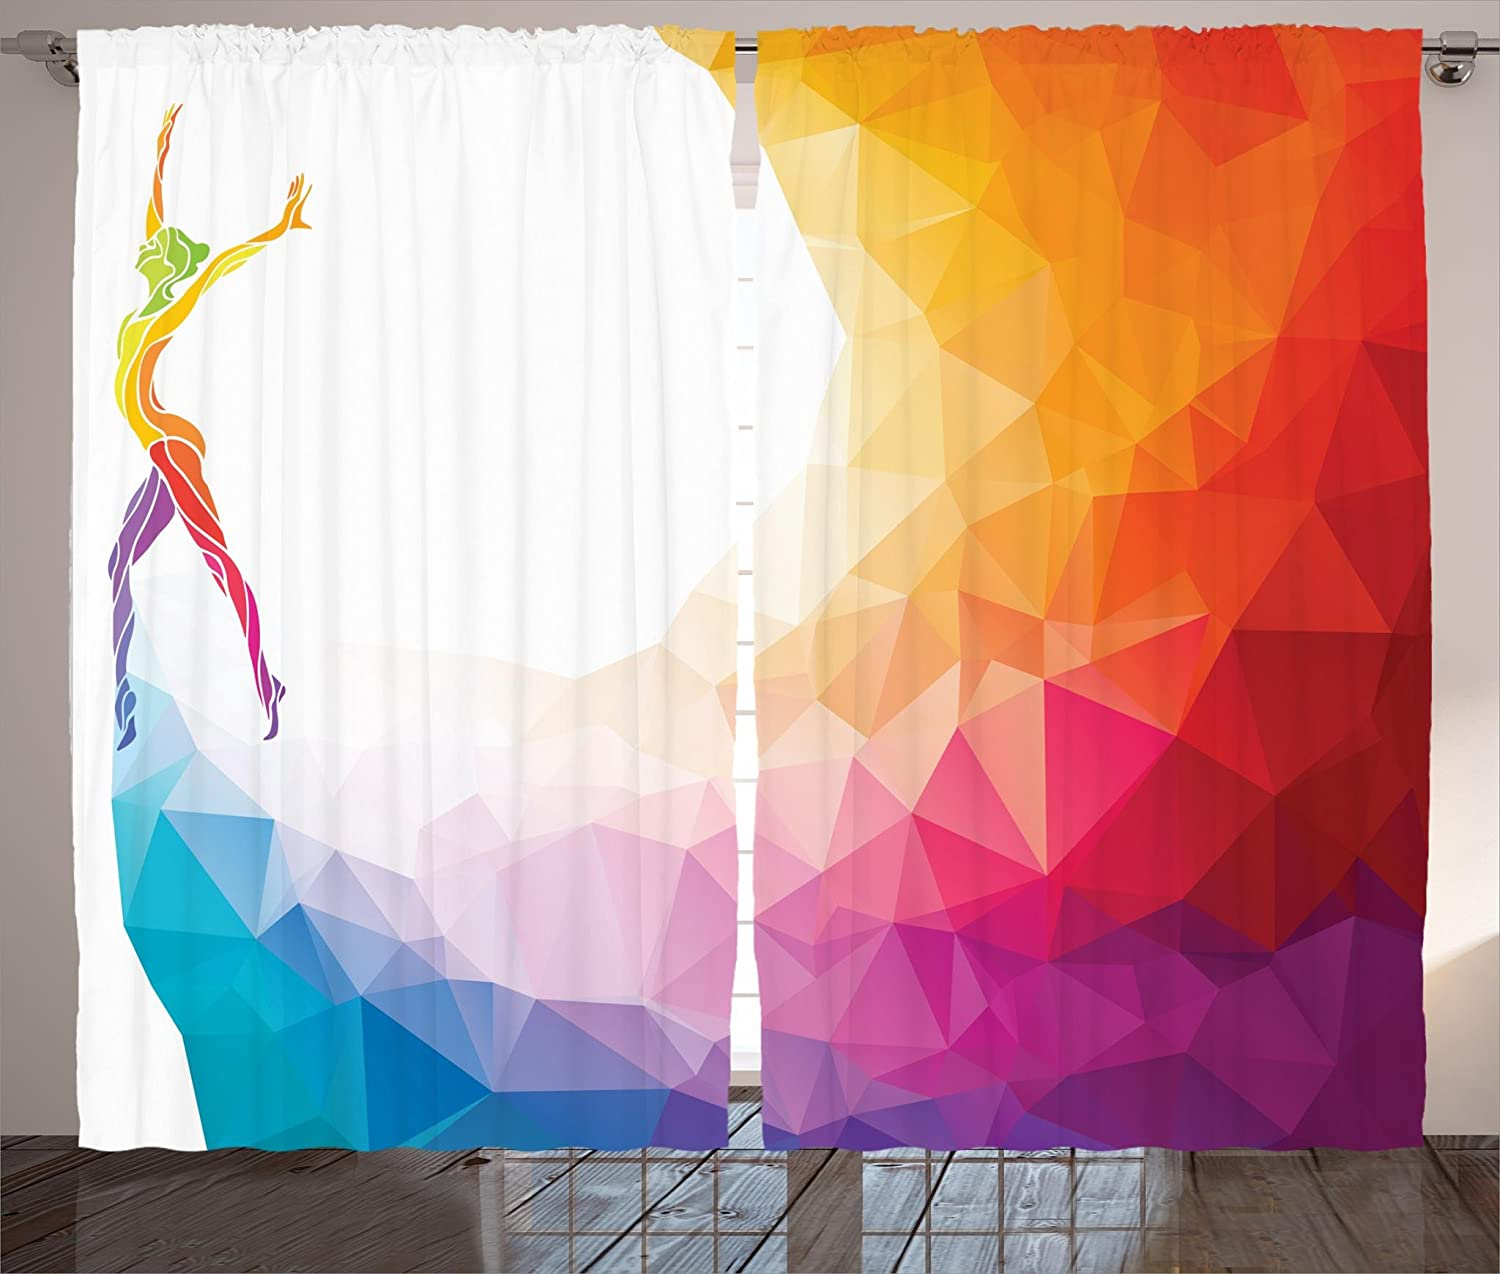 Ambesonne Sports Curtains Gymnastics Girl Gymnast Portrait Colored Geometric Digital Shapes Modern Olympics Living Room Bedroom Window Drapes 2 Panel Set 108 X 84 White Ruby Home Kitchen